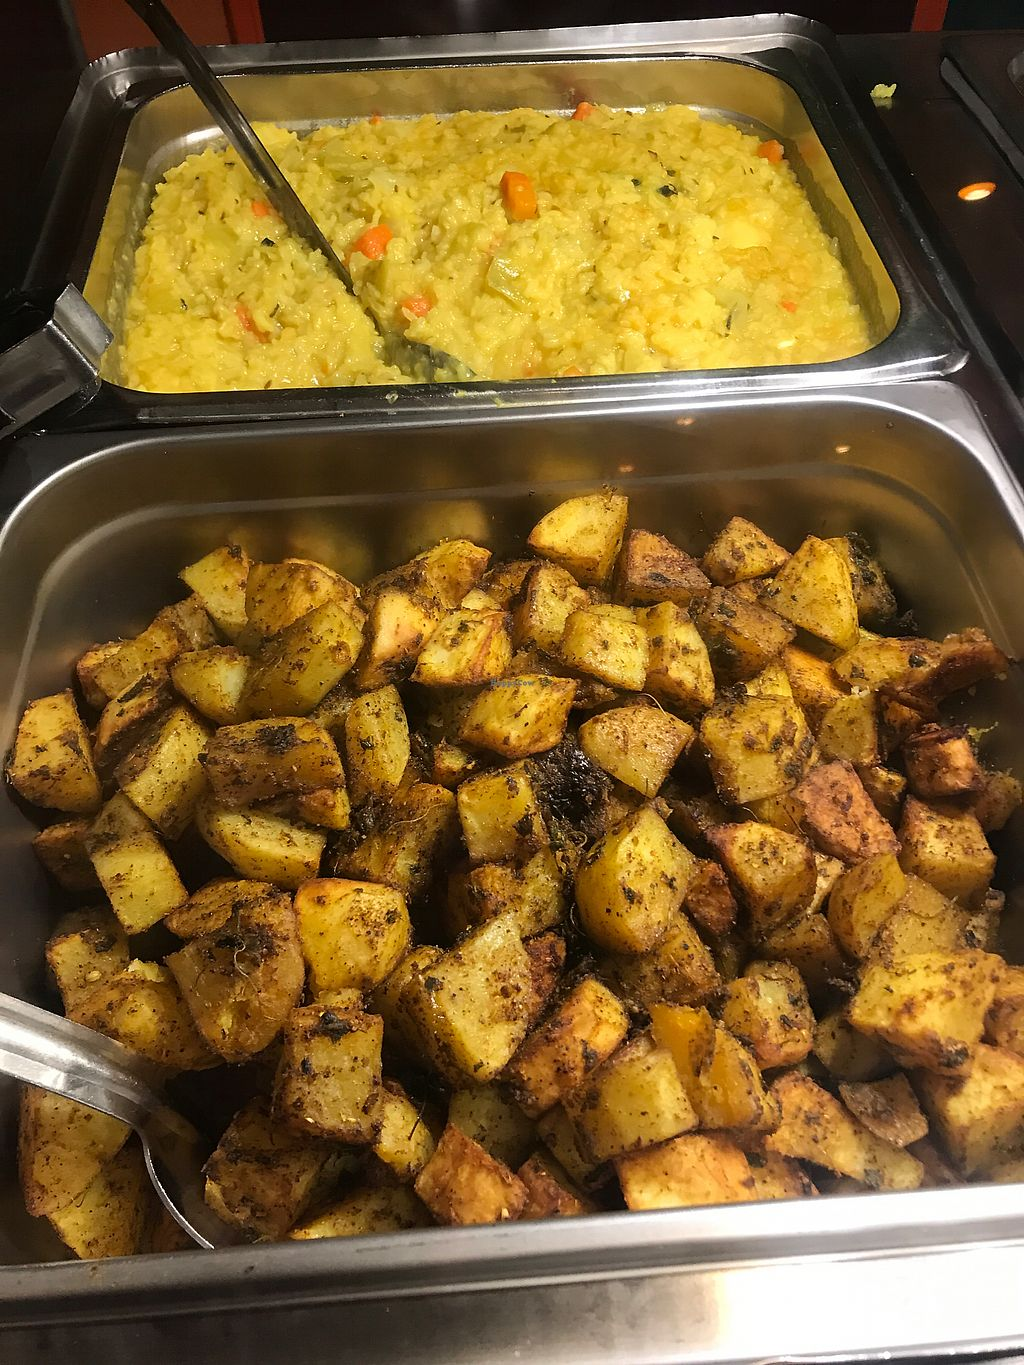 """Photo of Govinda's Vegetarian Lunch  by <a href=""""/members/profile/Birgit"""">Birgit</a> <br/>Kichari and potatoes <br/> December 18, 2017  - <a href='/contact/abuse/image/79125/337018'>Report</a>"""